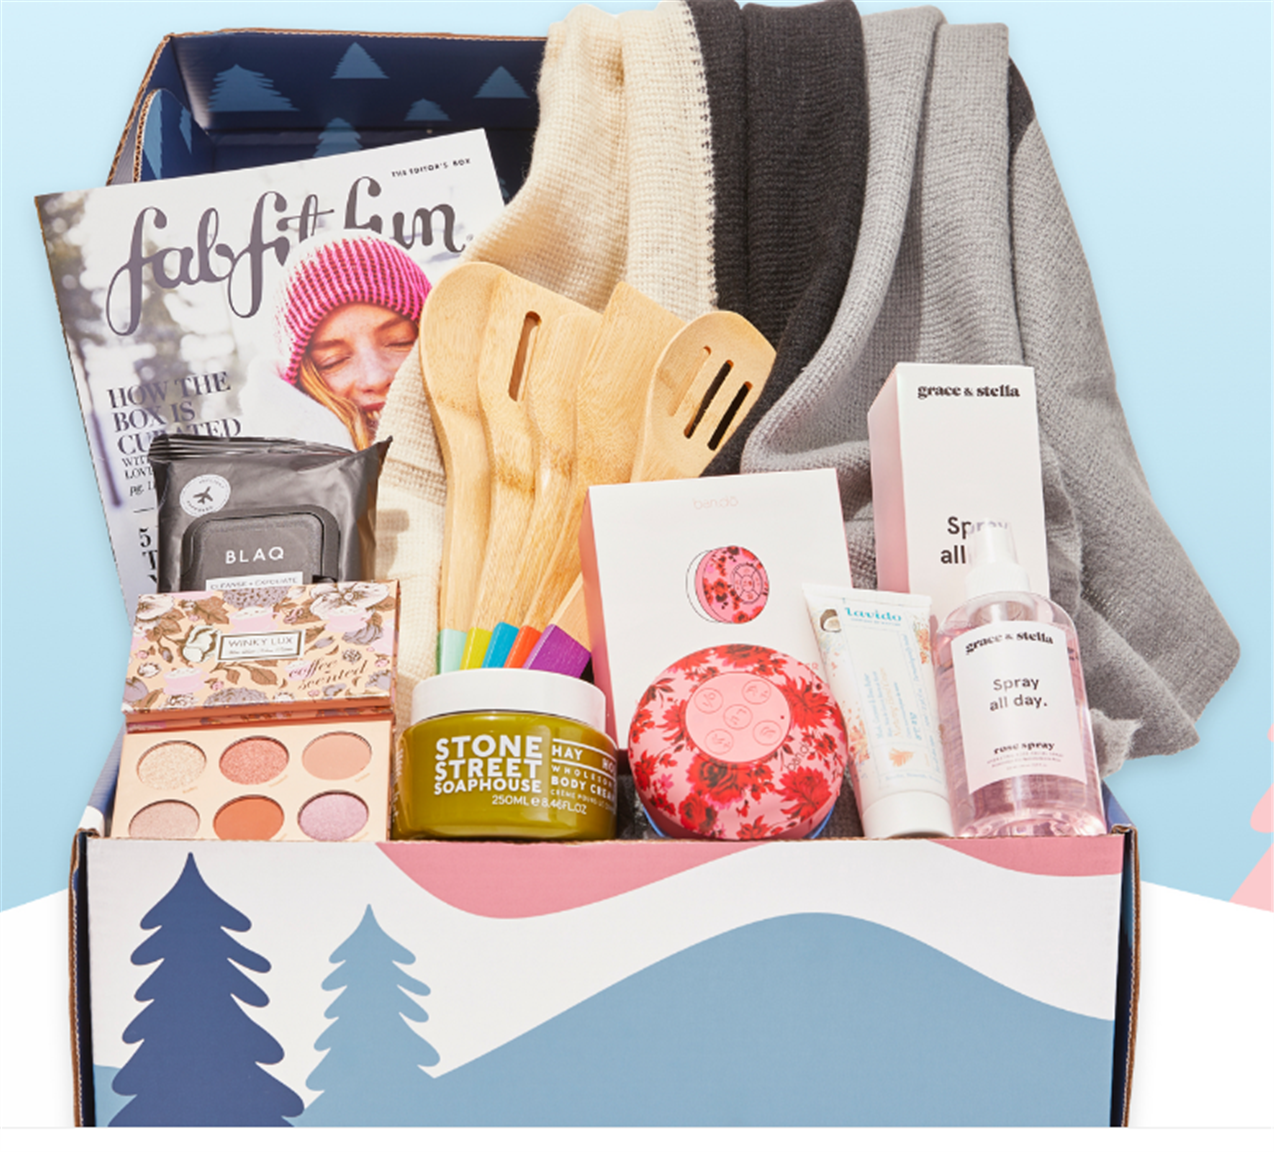 FabFitFun 2019 Winter Box Only $29.99 ($200 Value) For New Subscribers! Makes A Great Valentine's Day Gift!